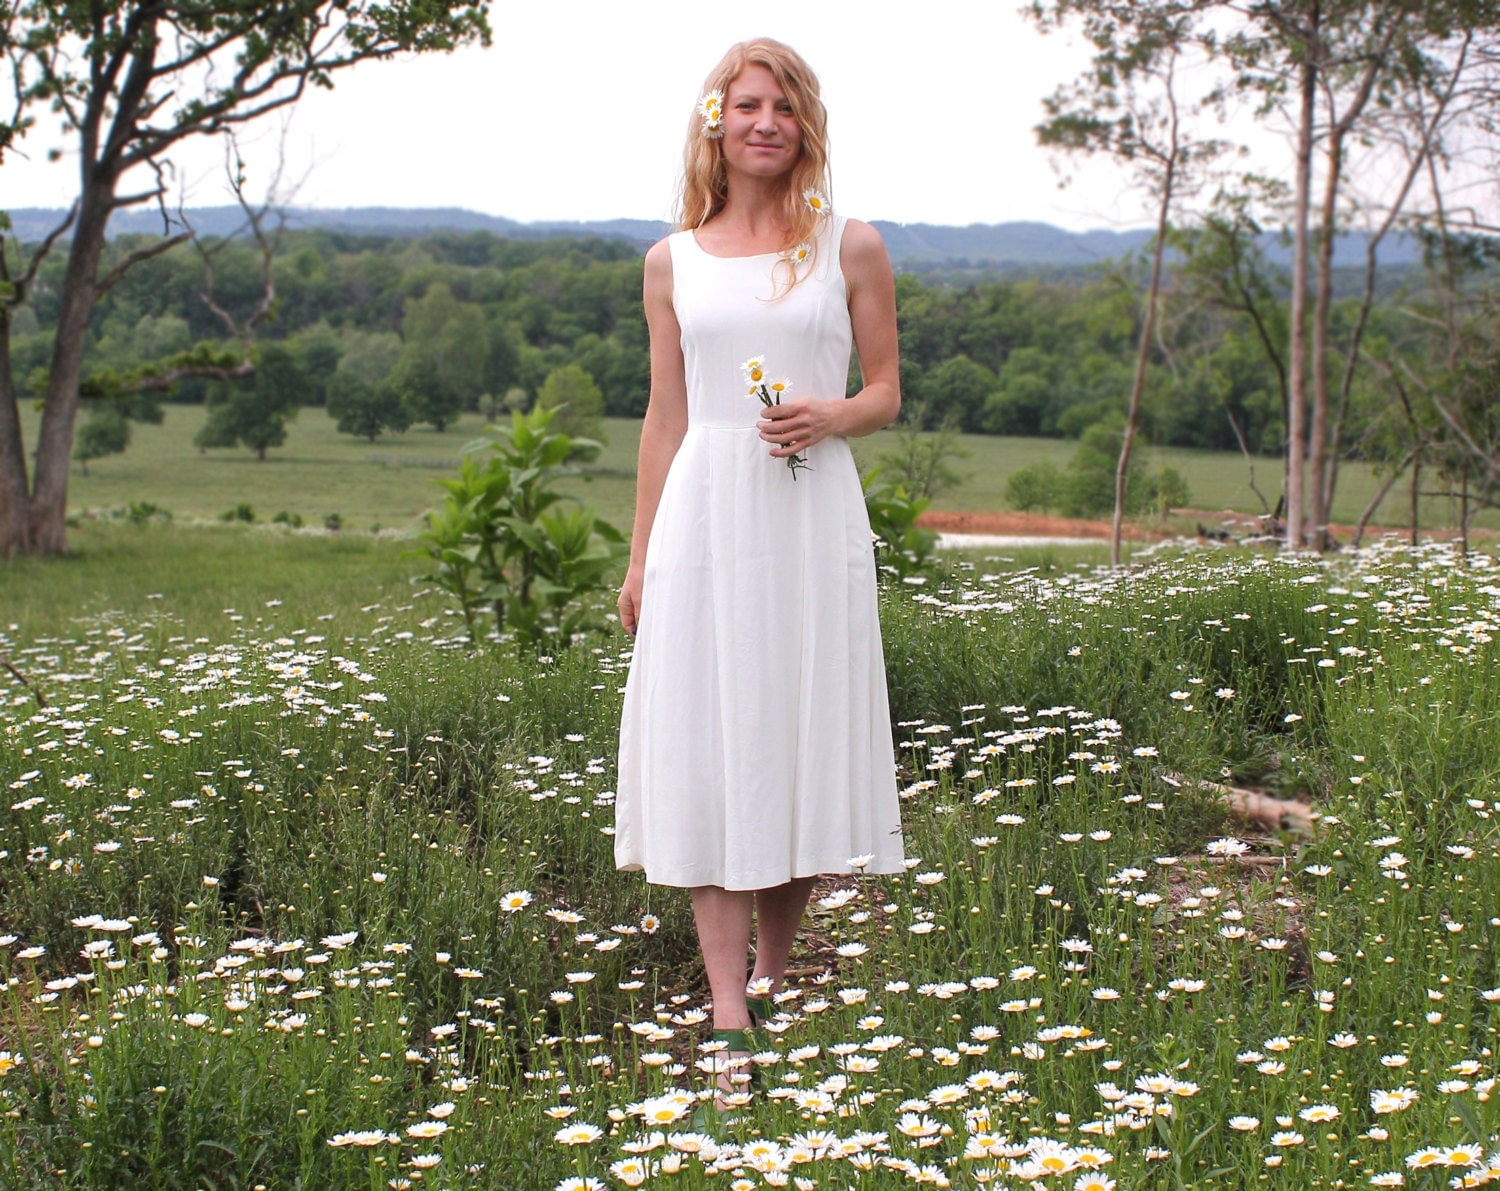 Casual Hippie Wedding Dress Summer Beach Wear Ivory Cream